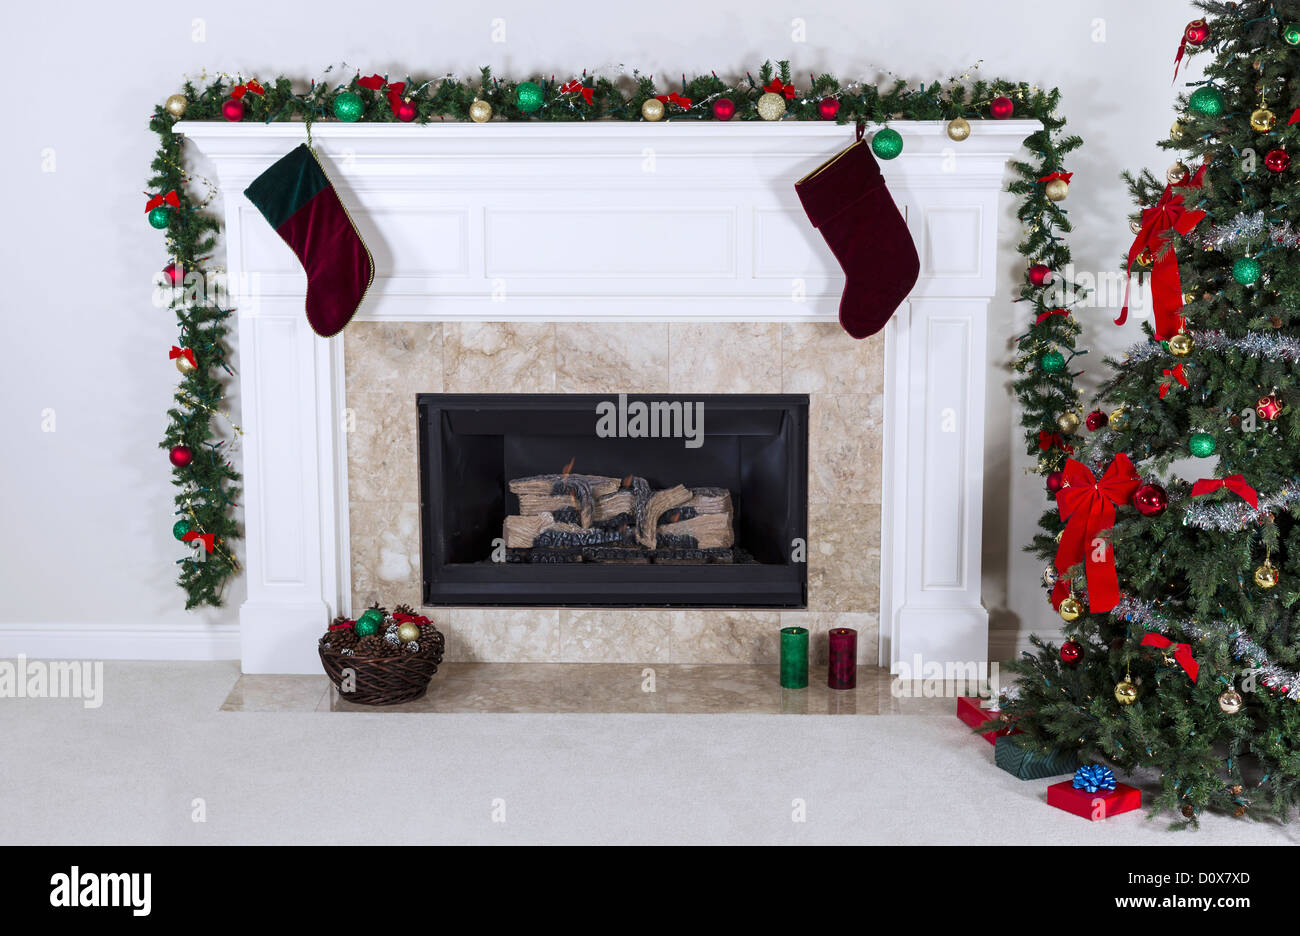 natural gas fireplace decorated with tree ornaments stockings